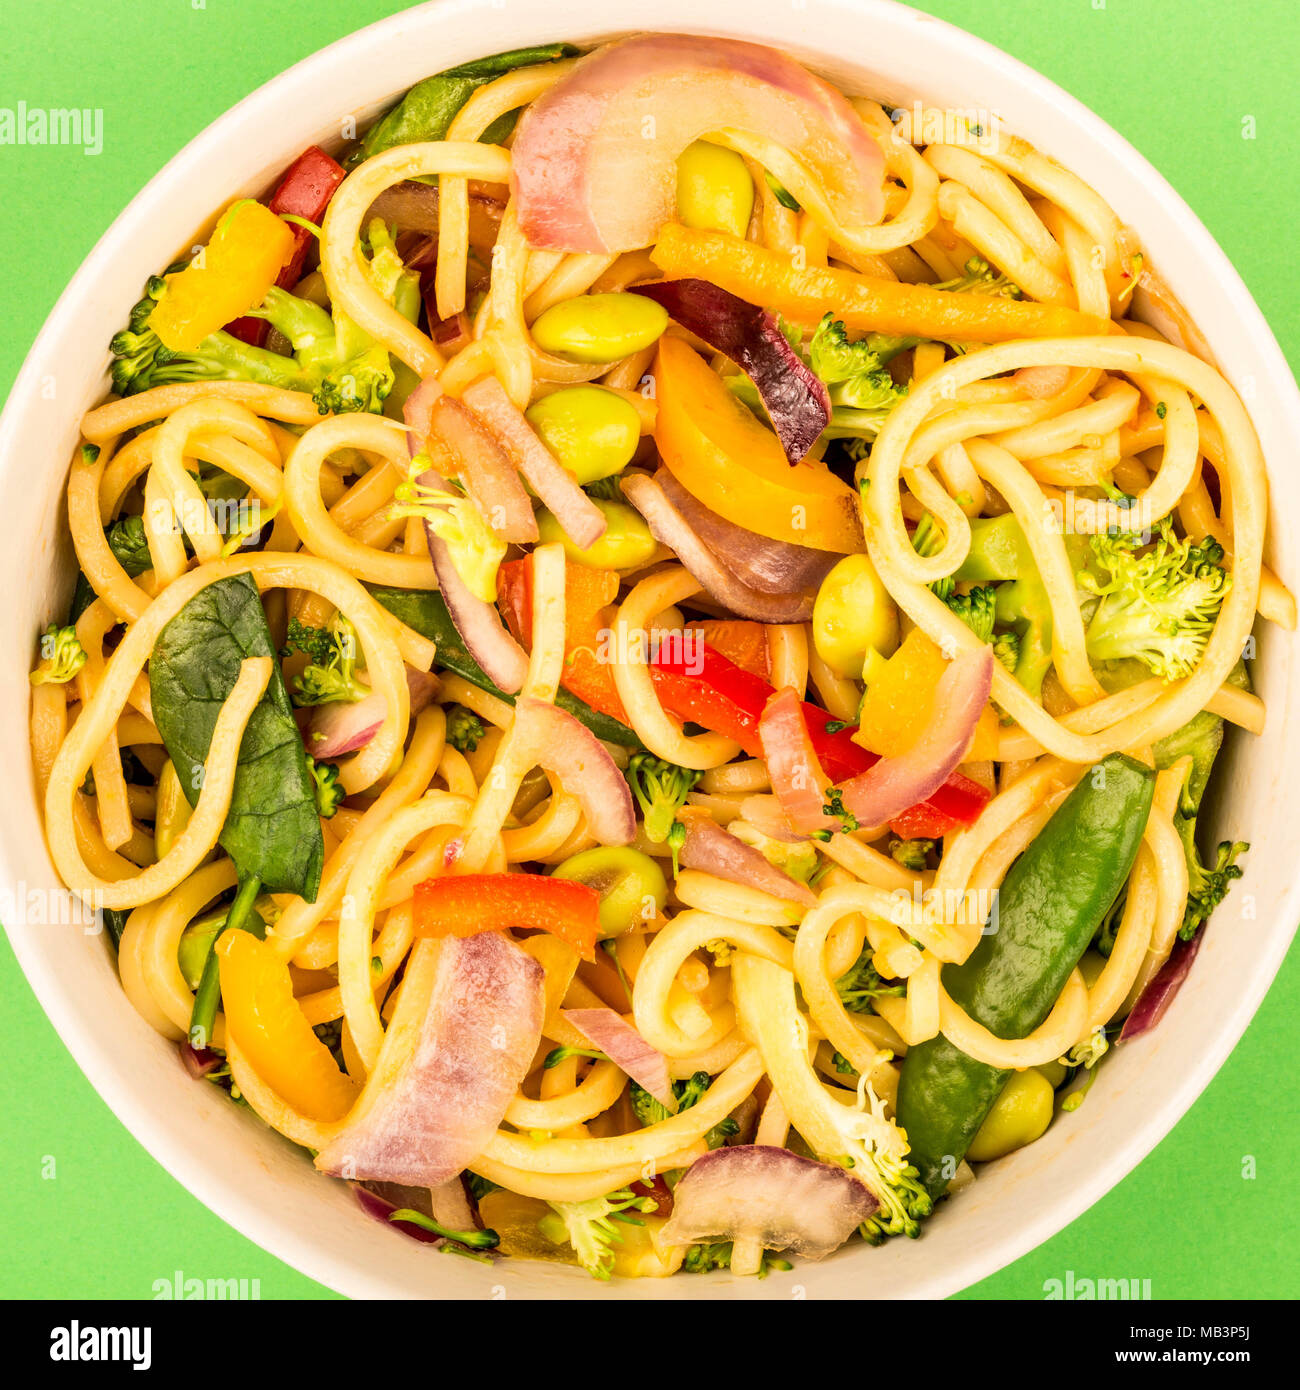 Stir Fried Egg Noodles With Fresh Vegetables Against A Green Background - Stock Image